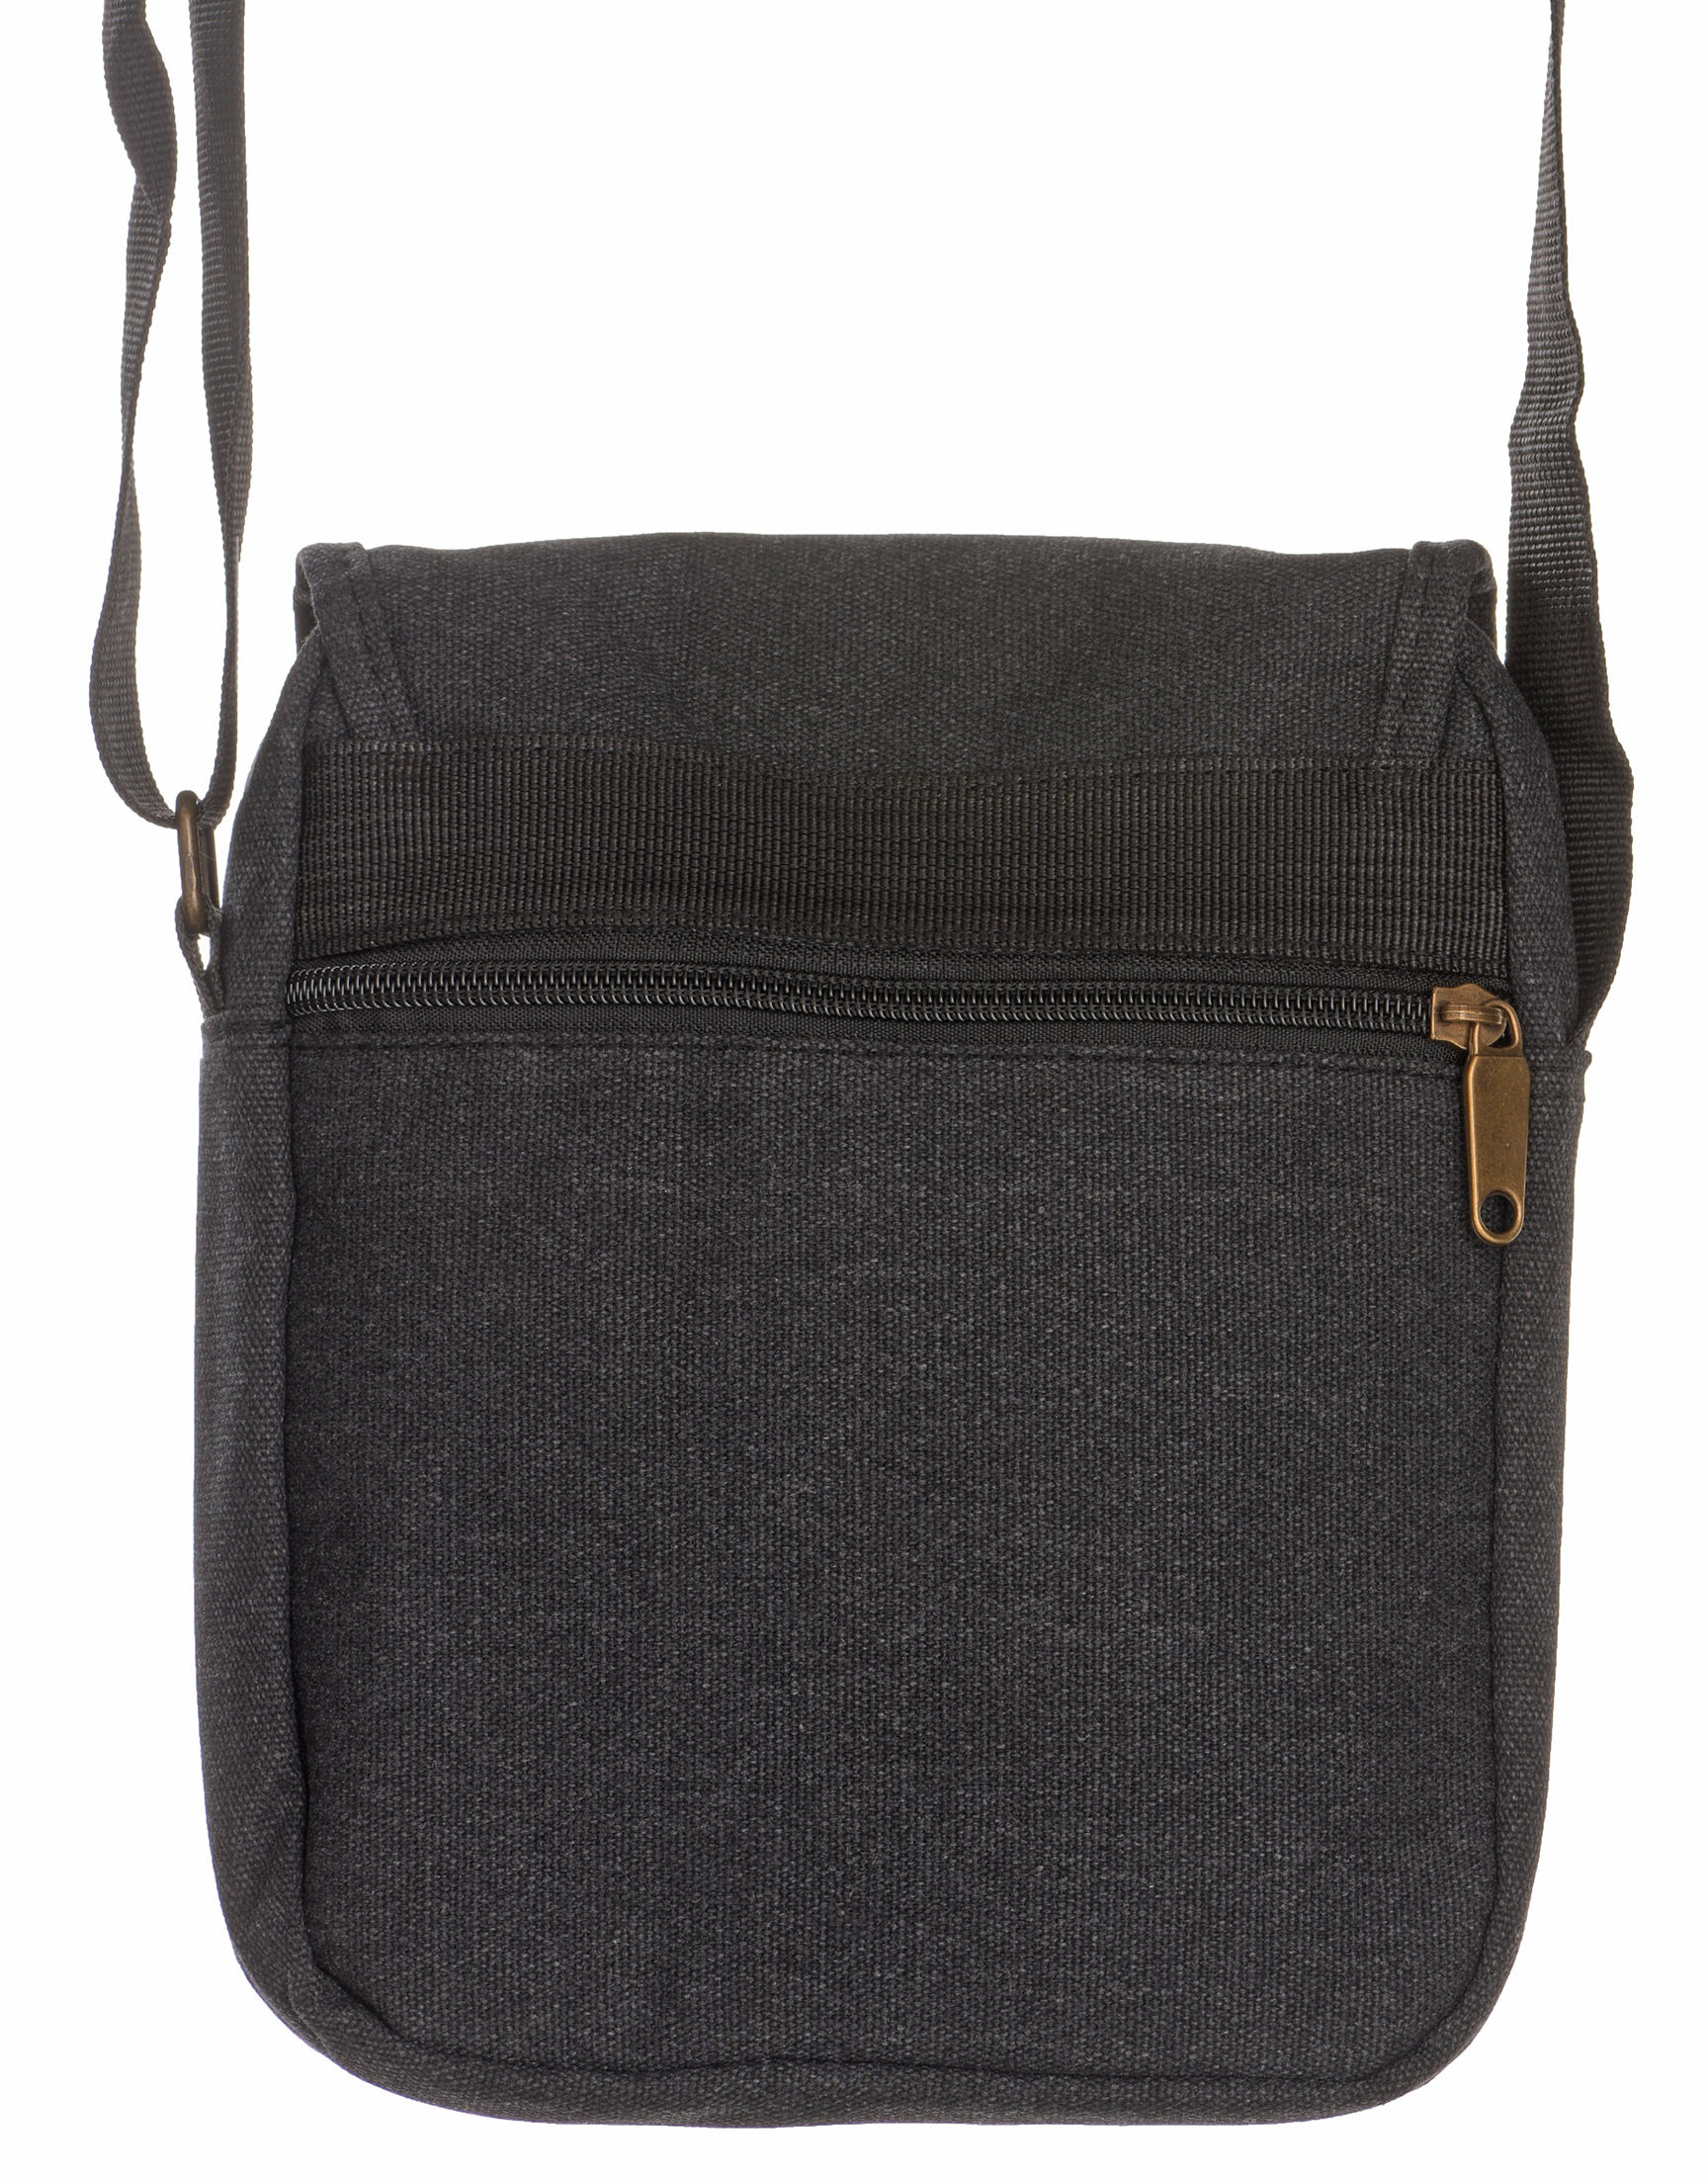 5fee47c146 Mens - Ladies Travel - Work Canvas Small Messenger Style Shoulder ...